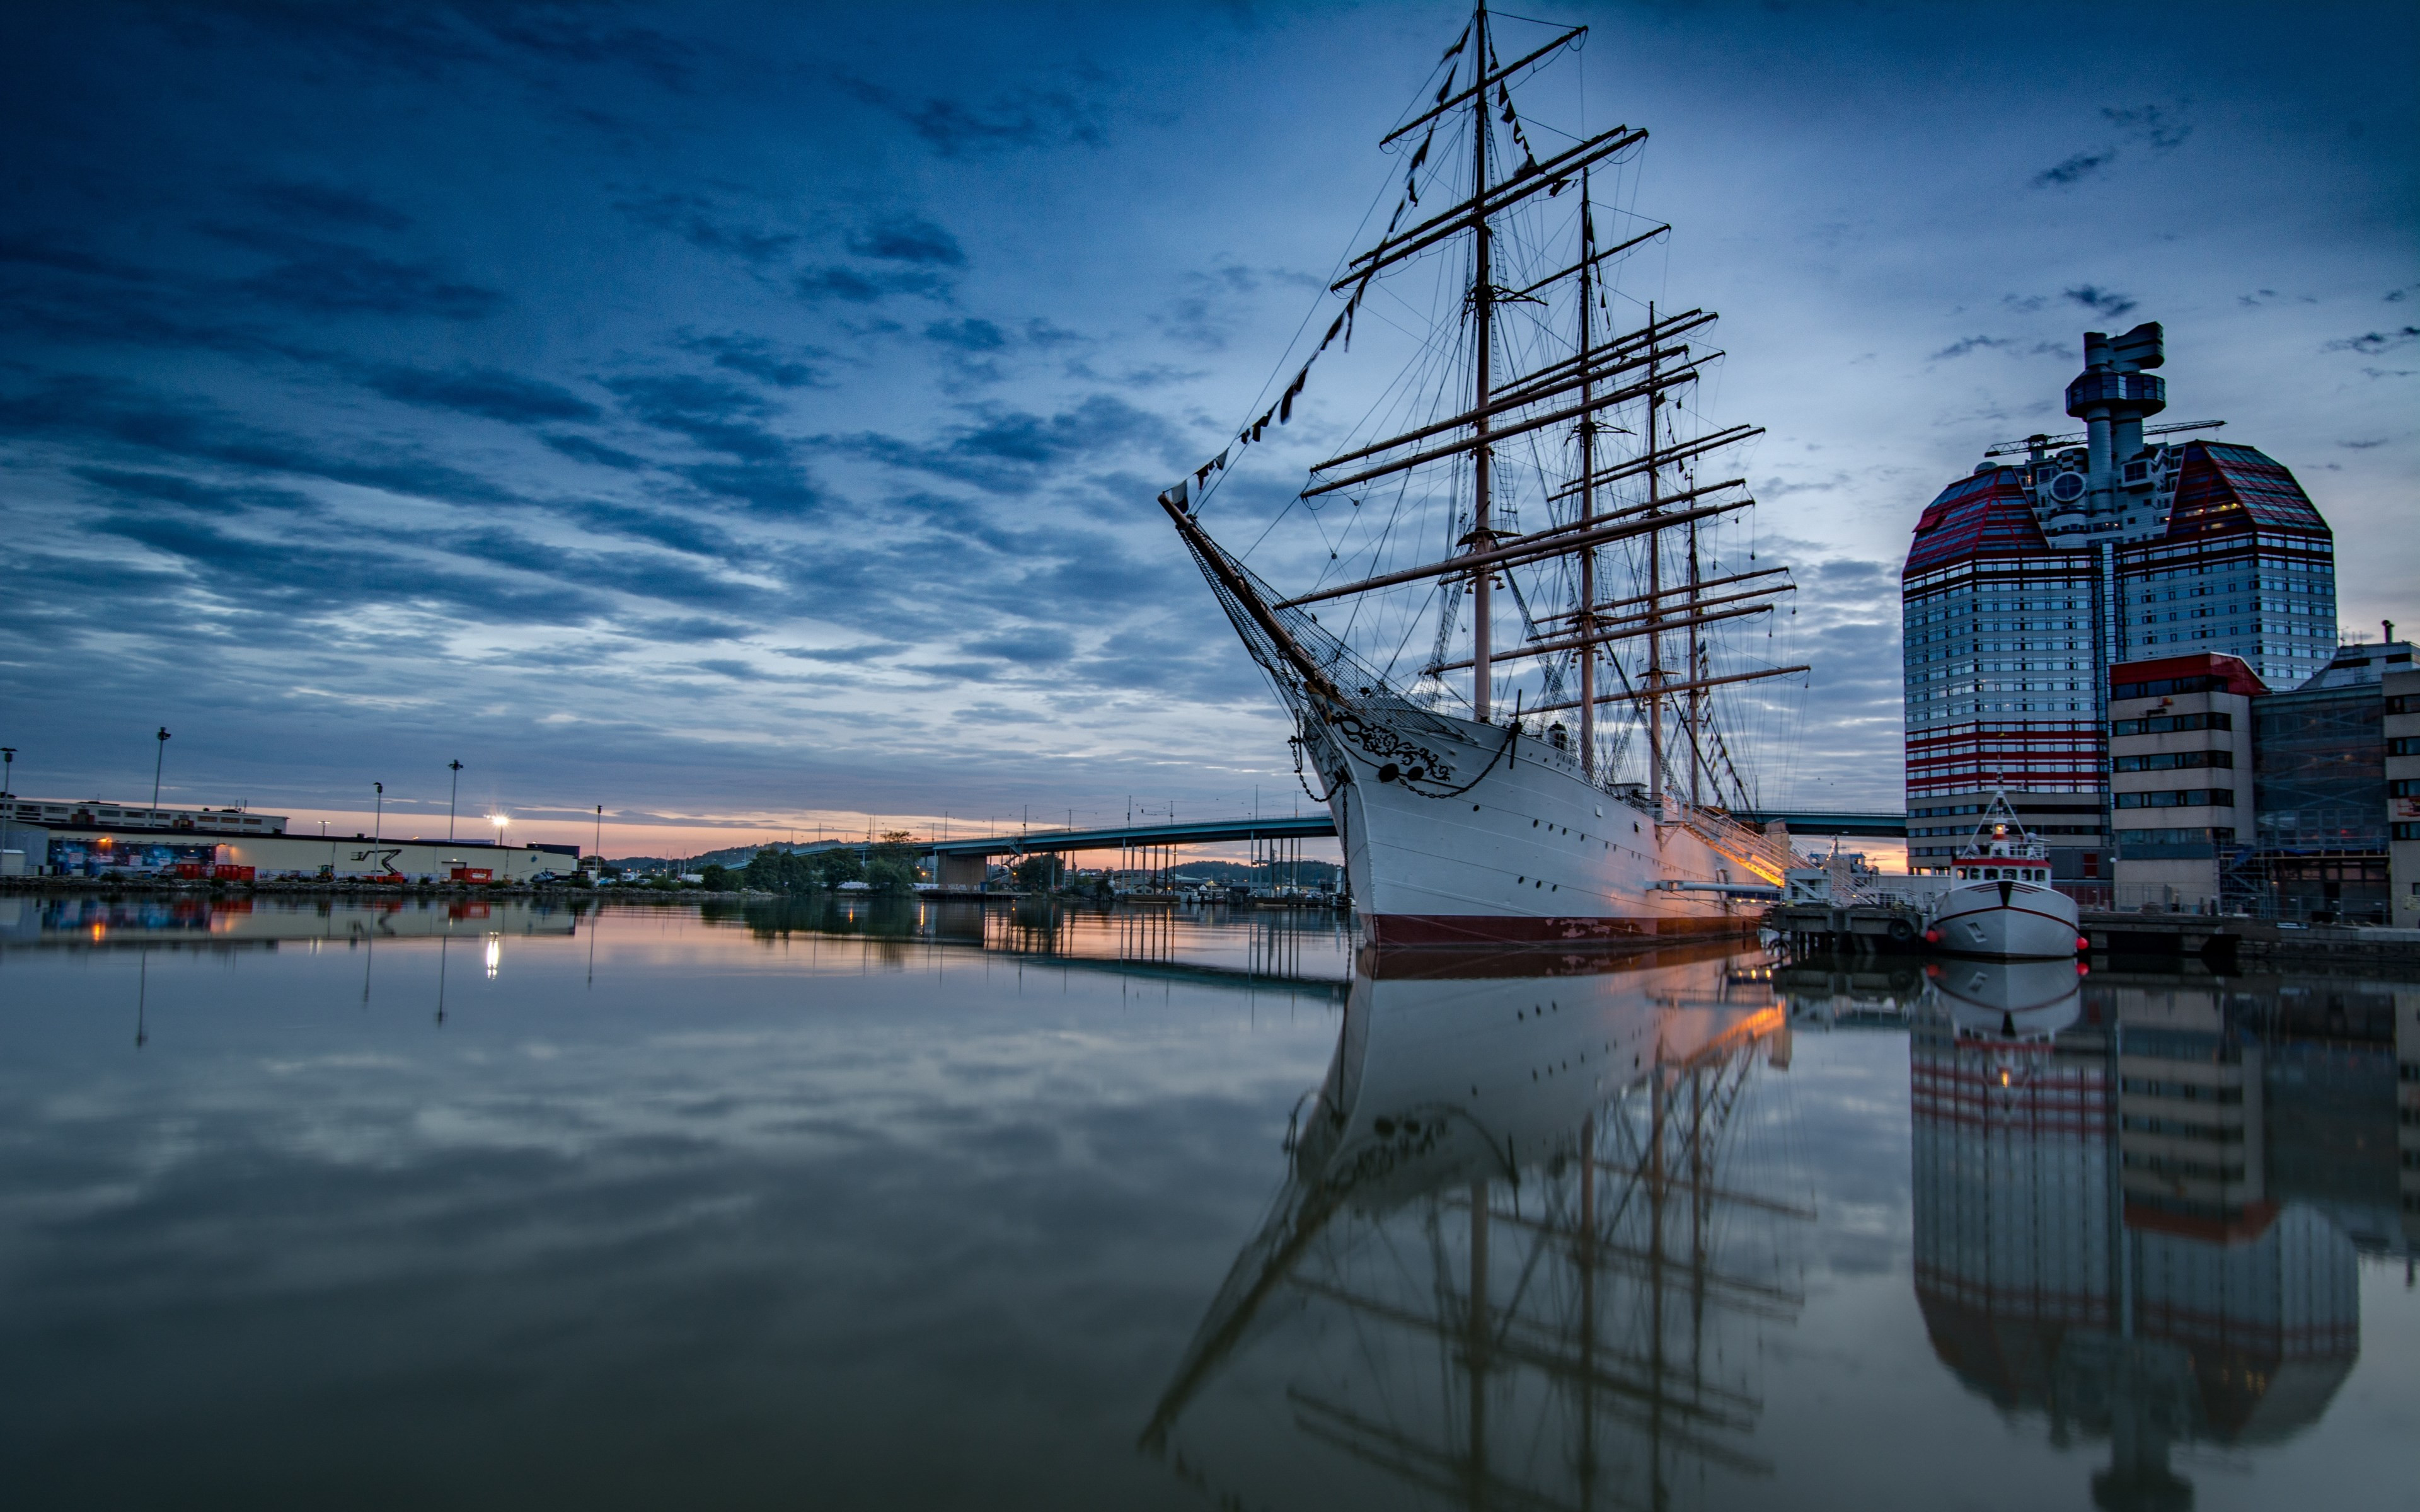 Historic wooden sailing ship in Gothenburg Harbour | 3840x2400 wallpaper